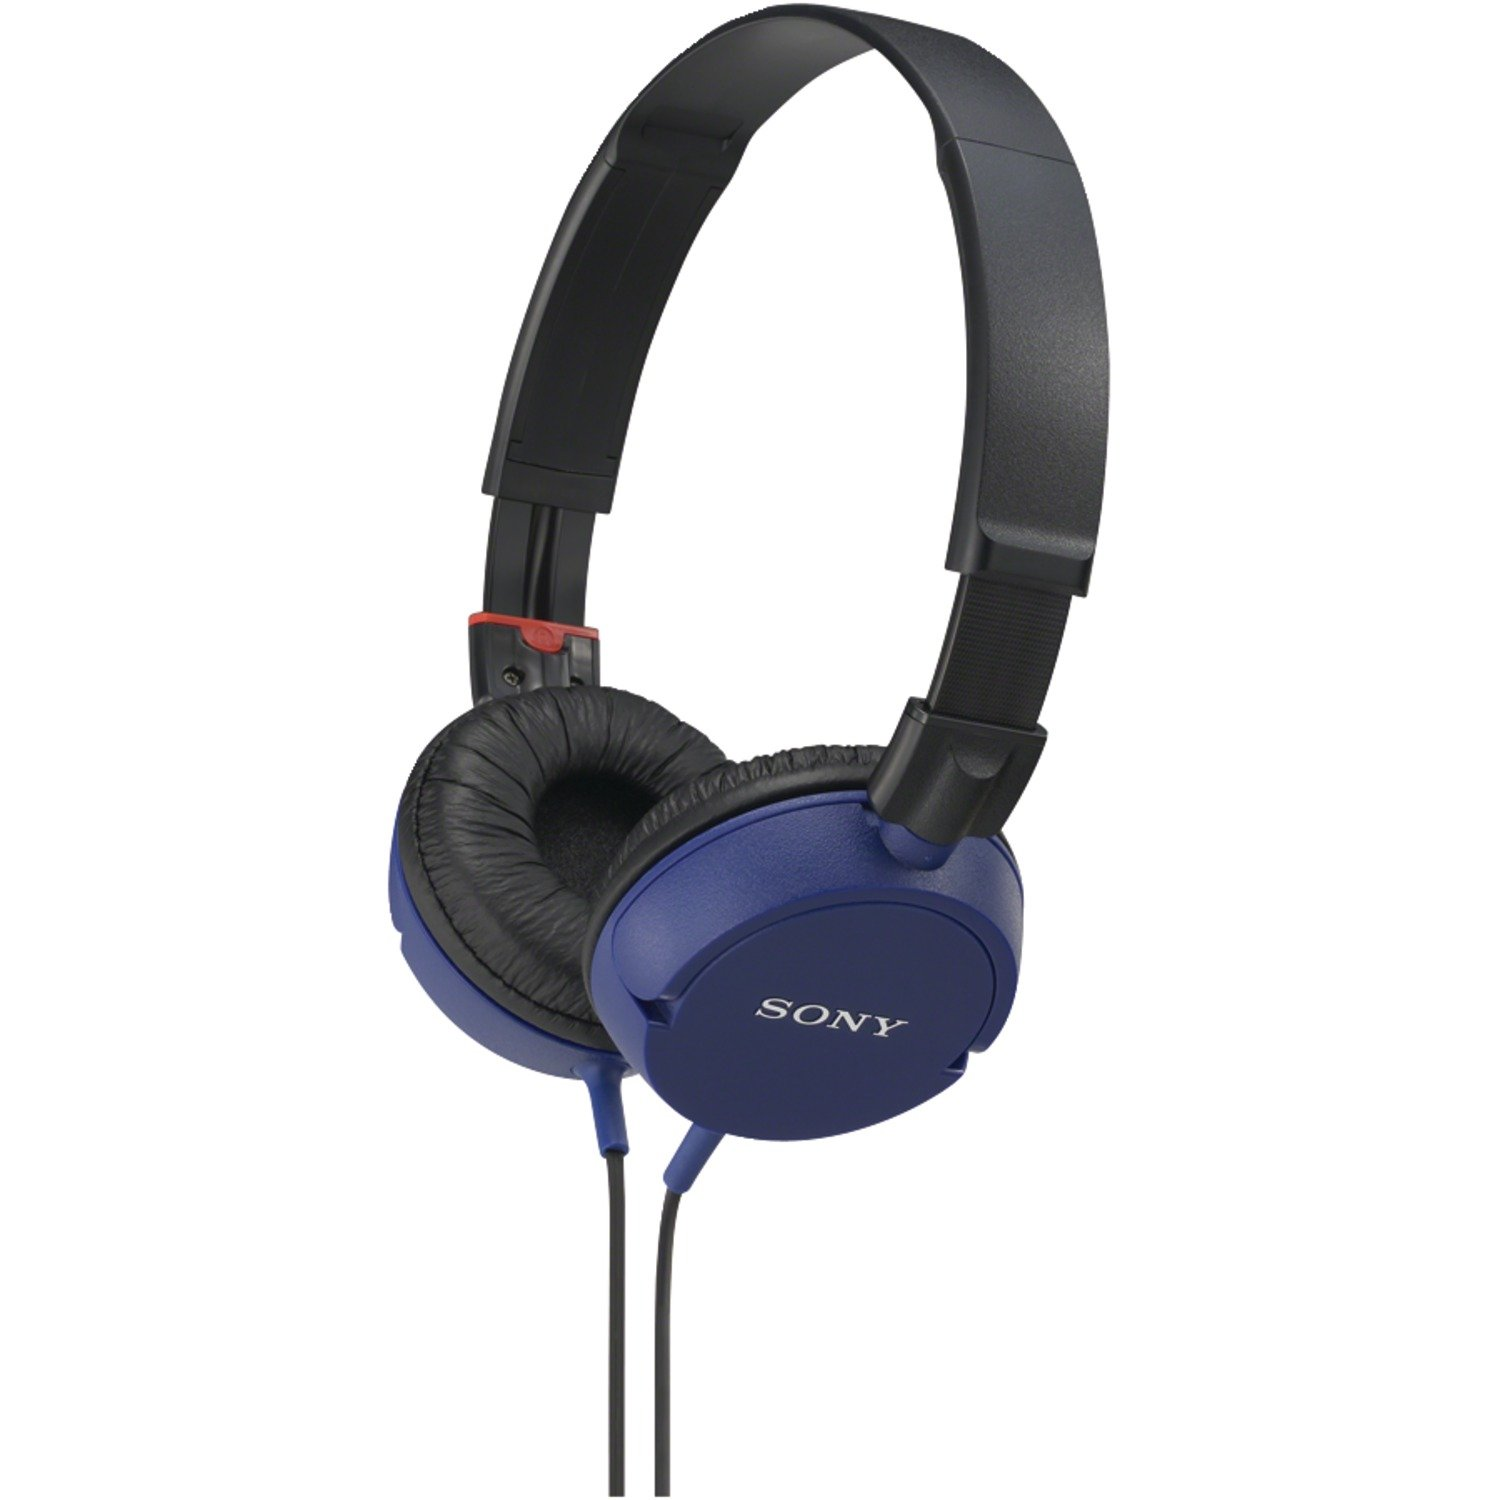 Sony MDRZX100 ZX Series Stereo Headphones (Blue)